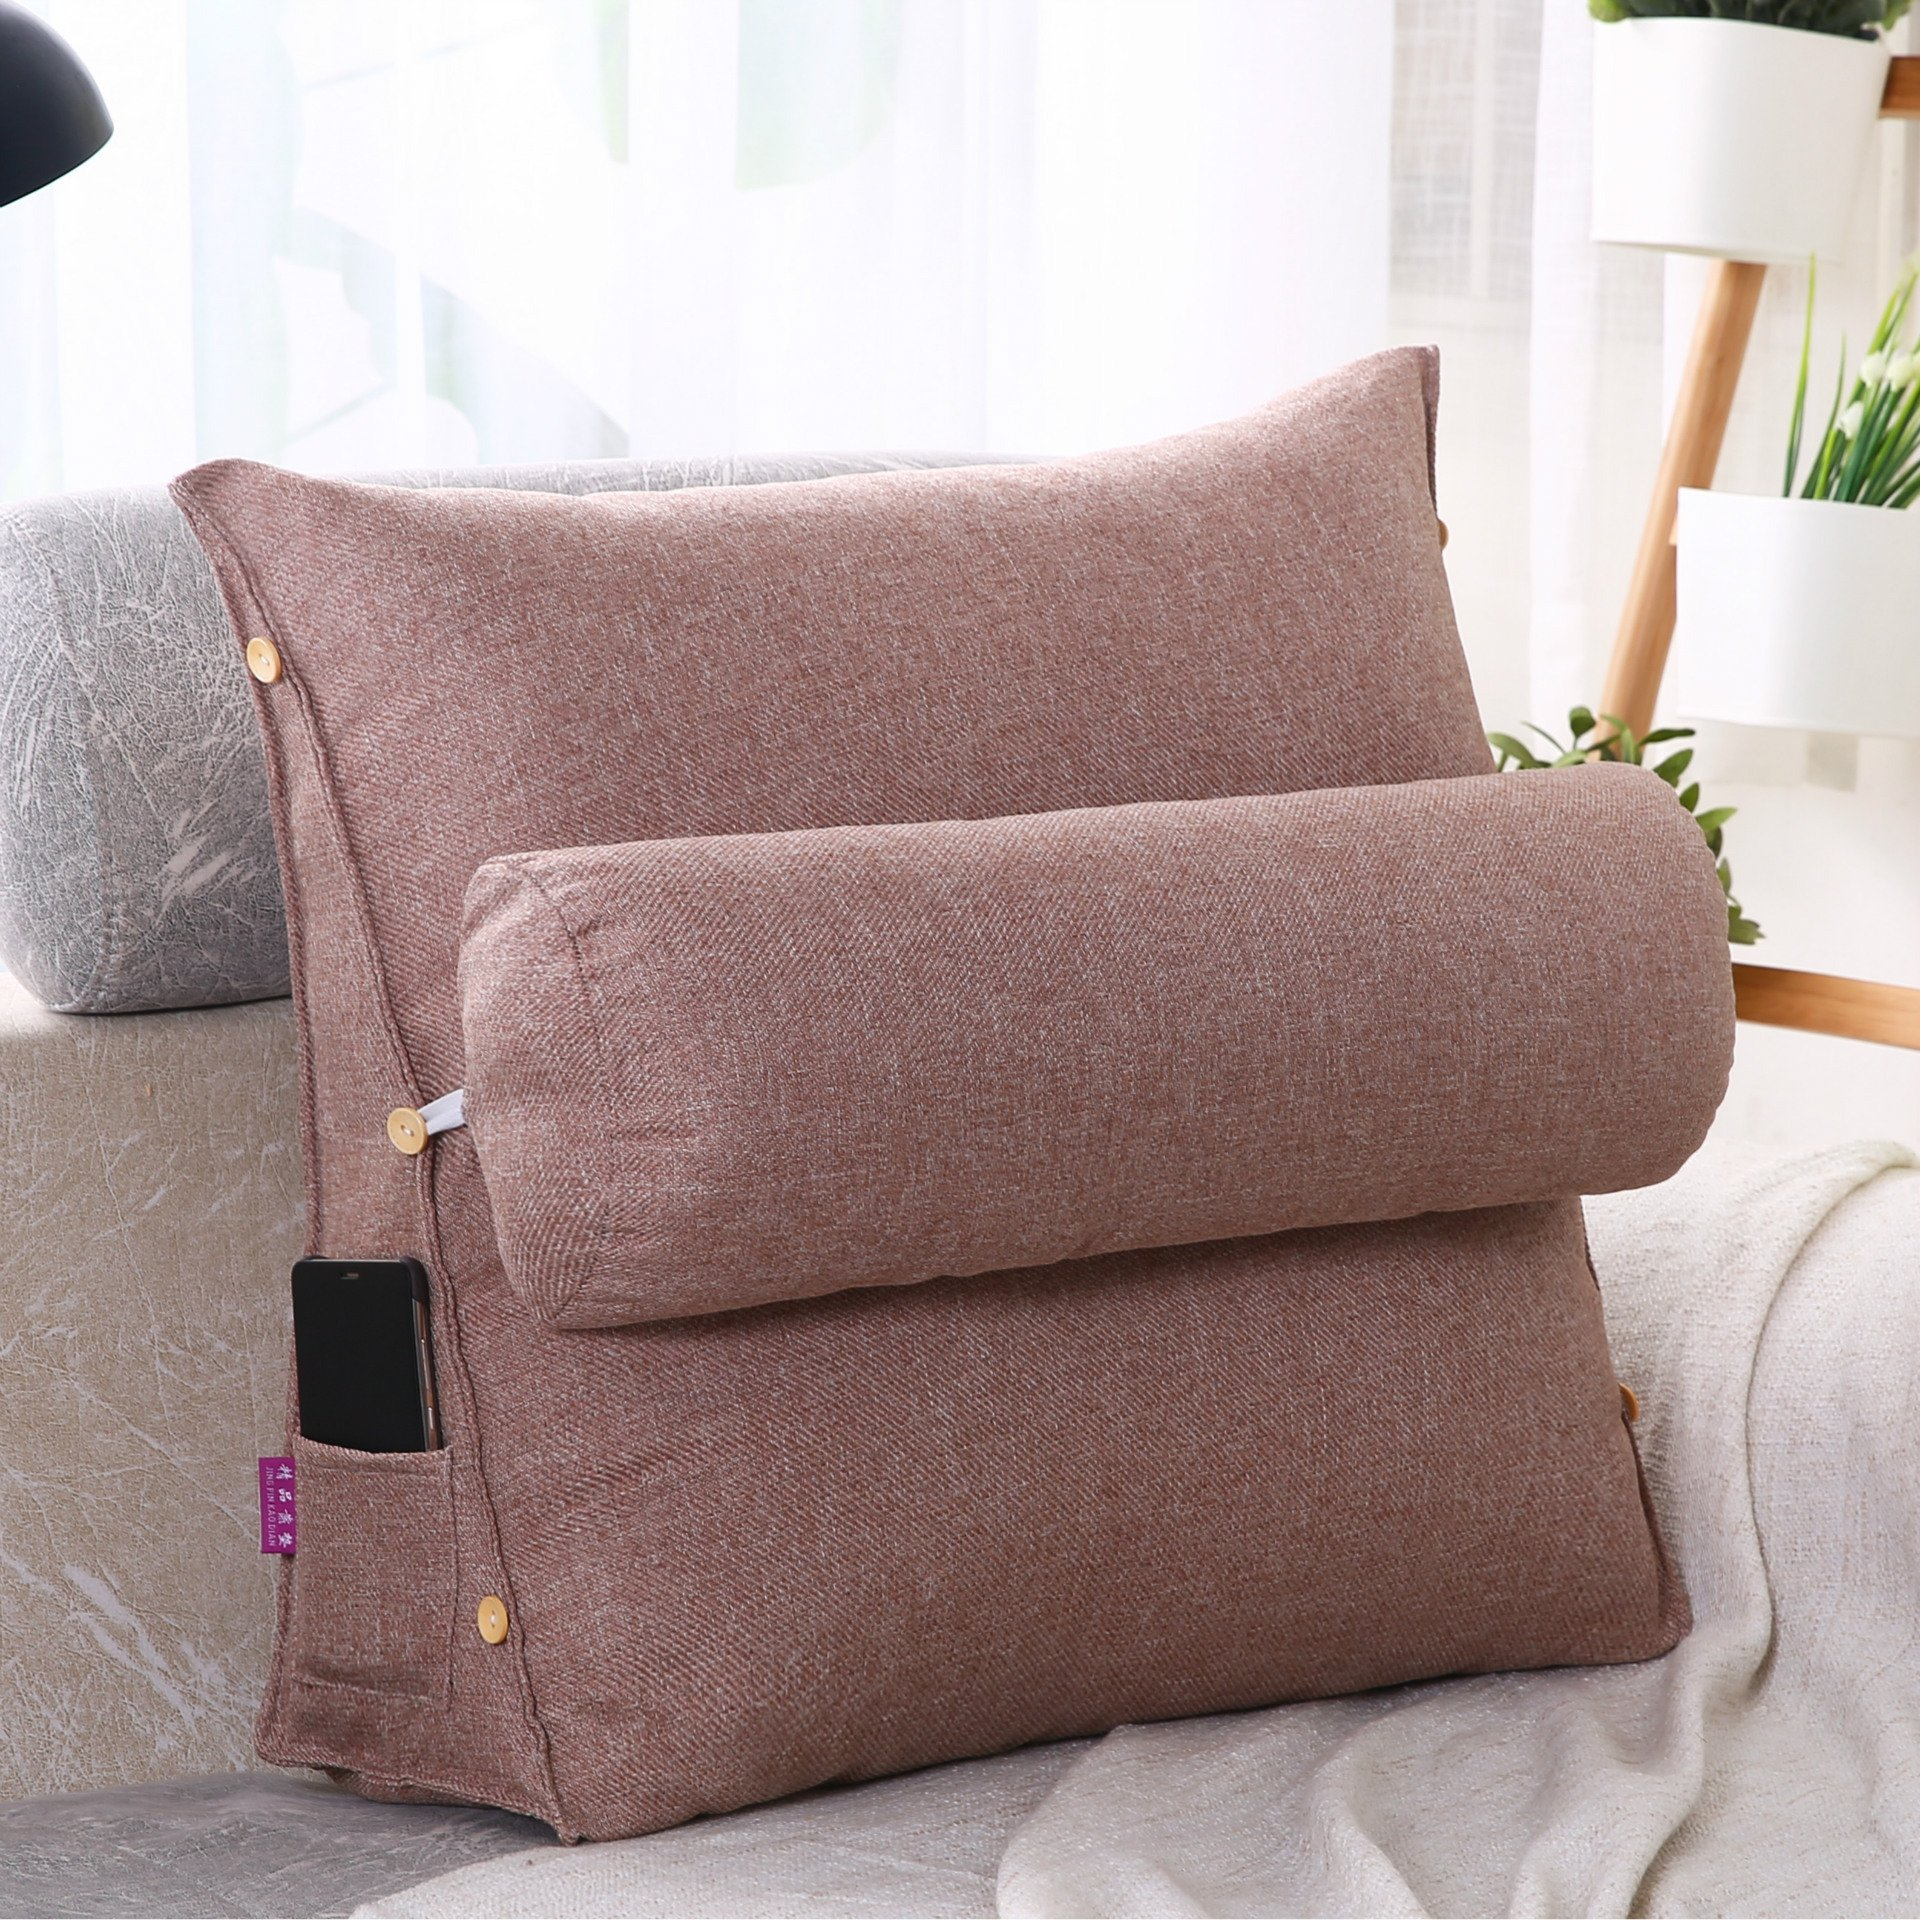 LUOTIANLANG Office sofa cushion pillow waist pillow for pregnant women Home Furnishing ornaments triangle comfortable cushion,Red bean paste,50x180x20cm